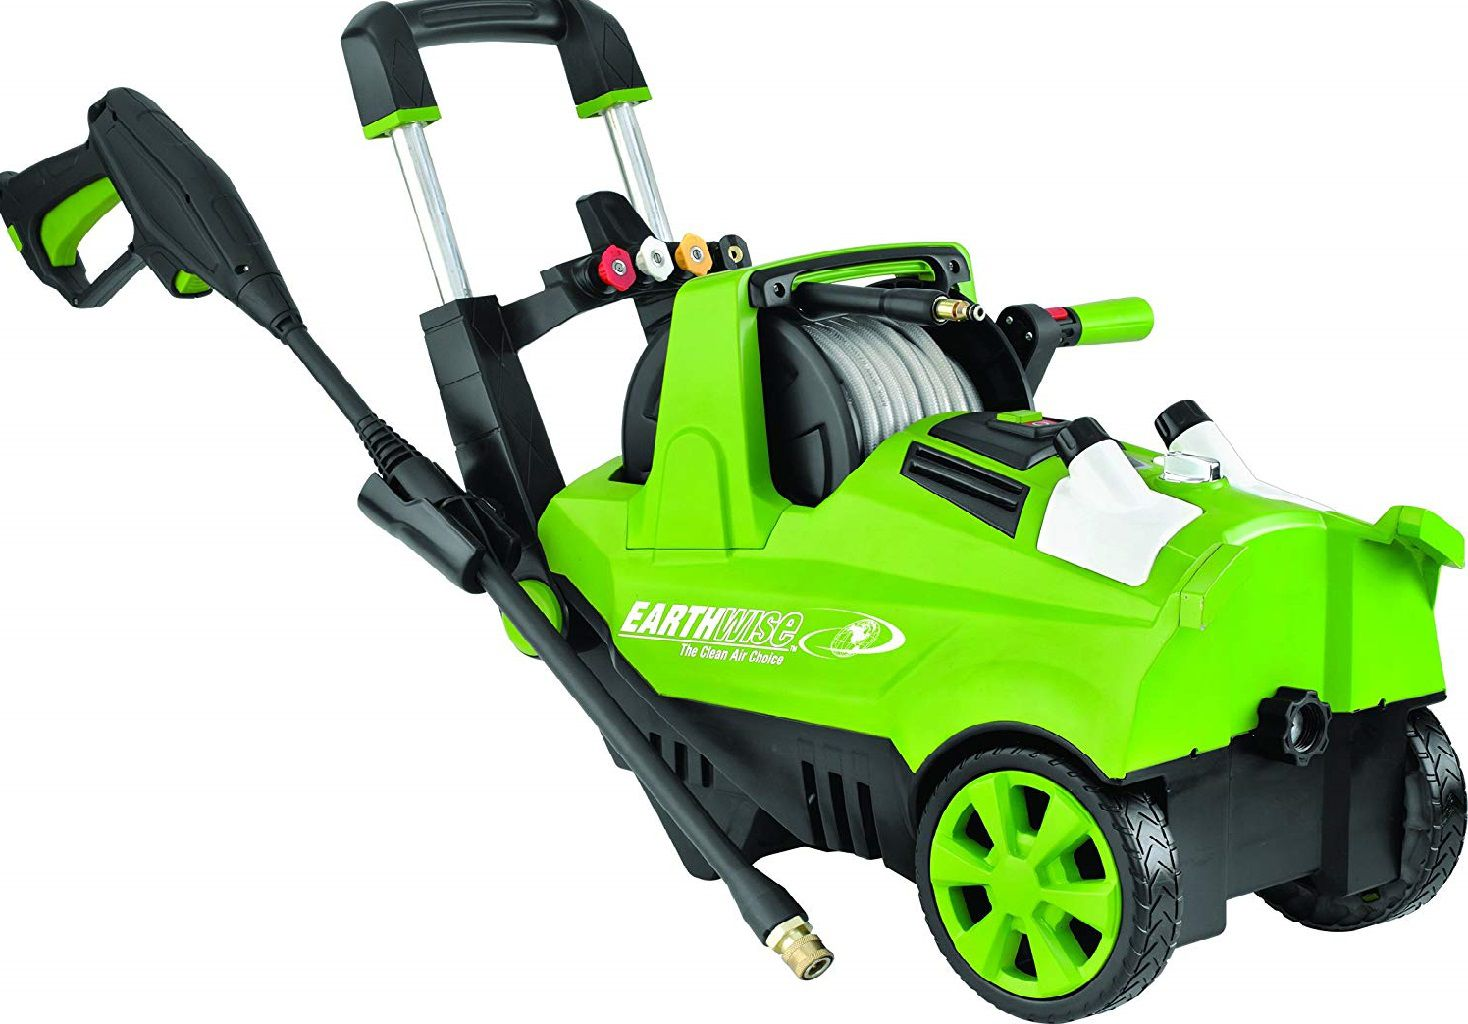 Earthwise PW18503 Electric Pressure Washer